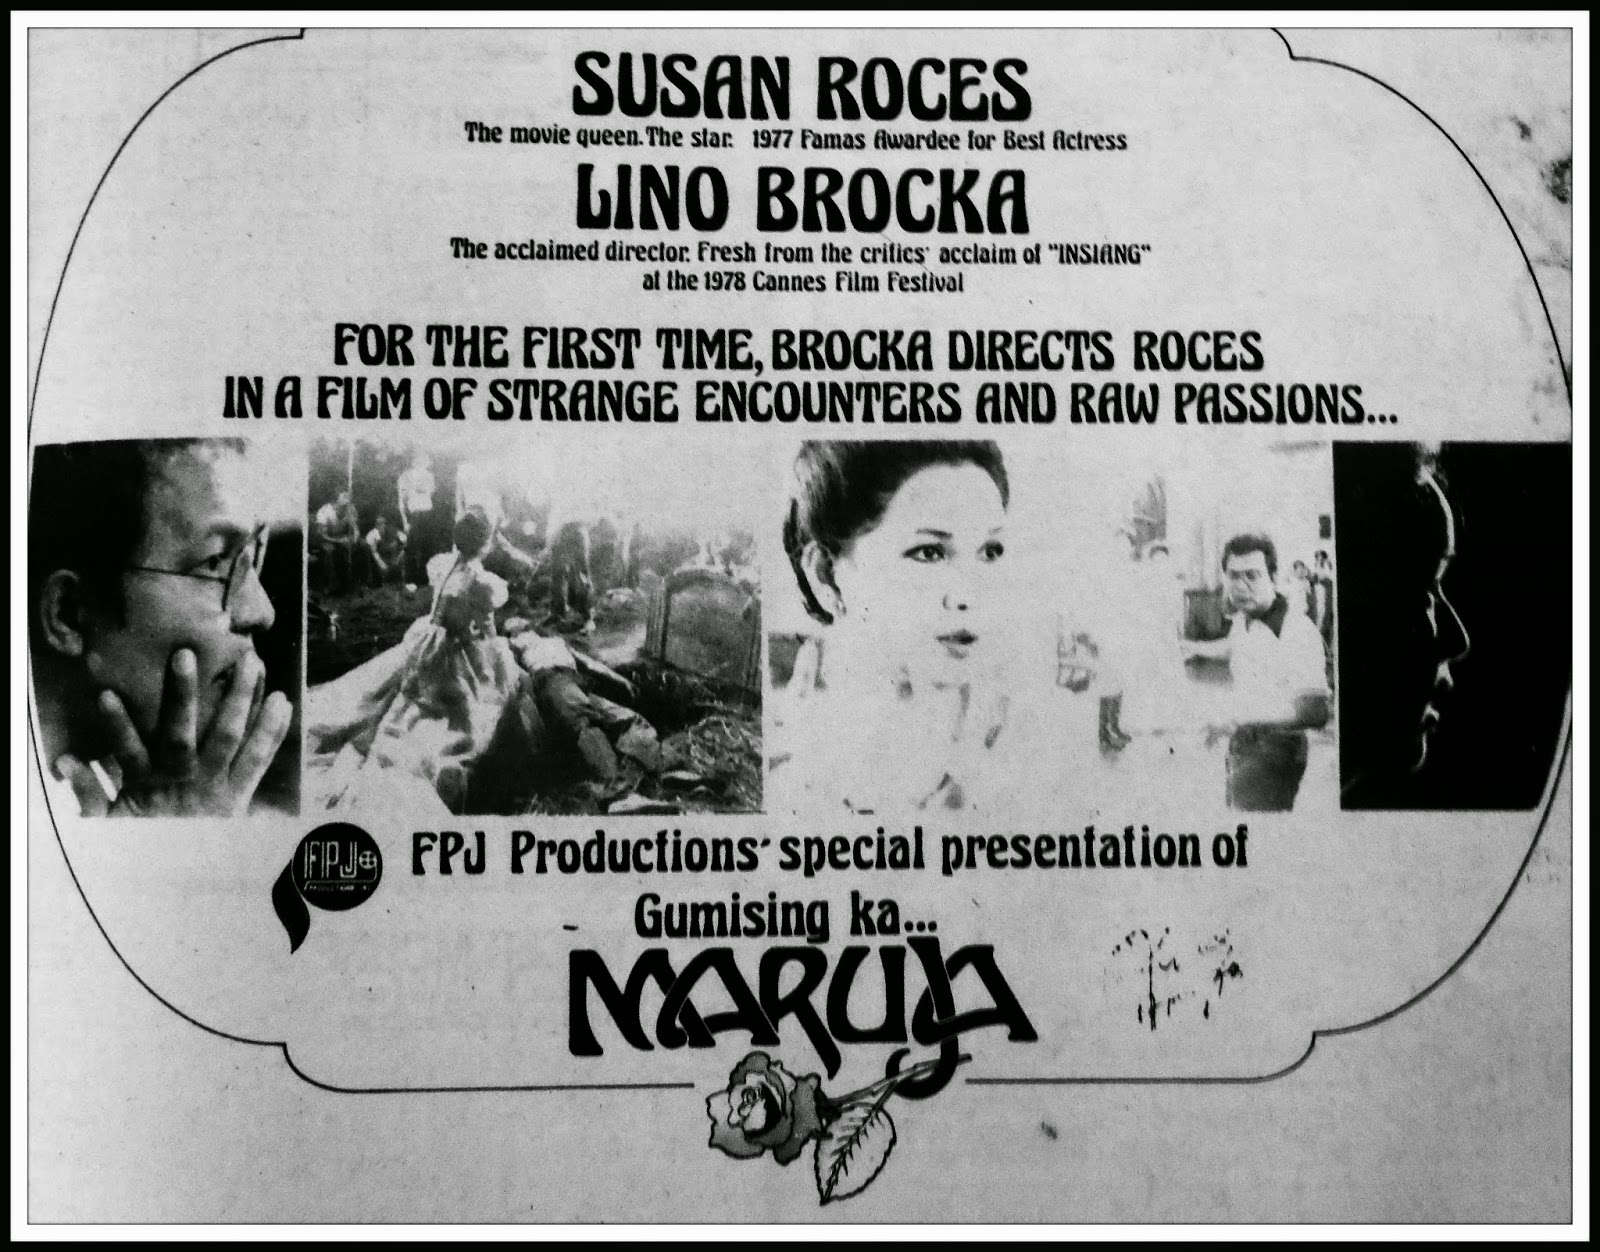 Maruja film. | Photo from https://susanroces.blogspot.com/.